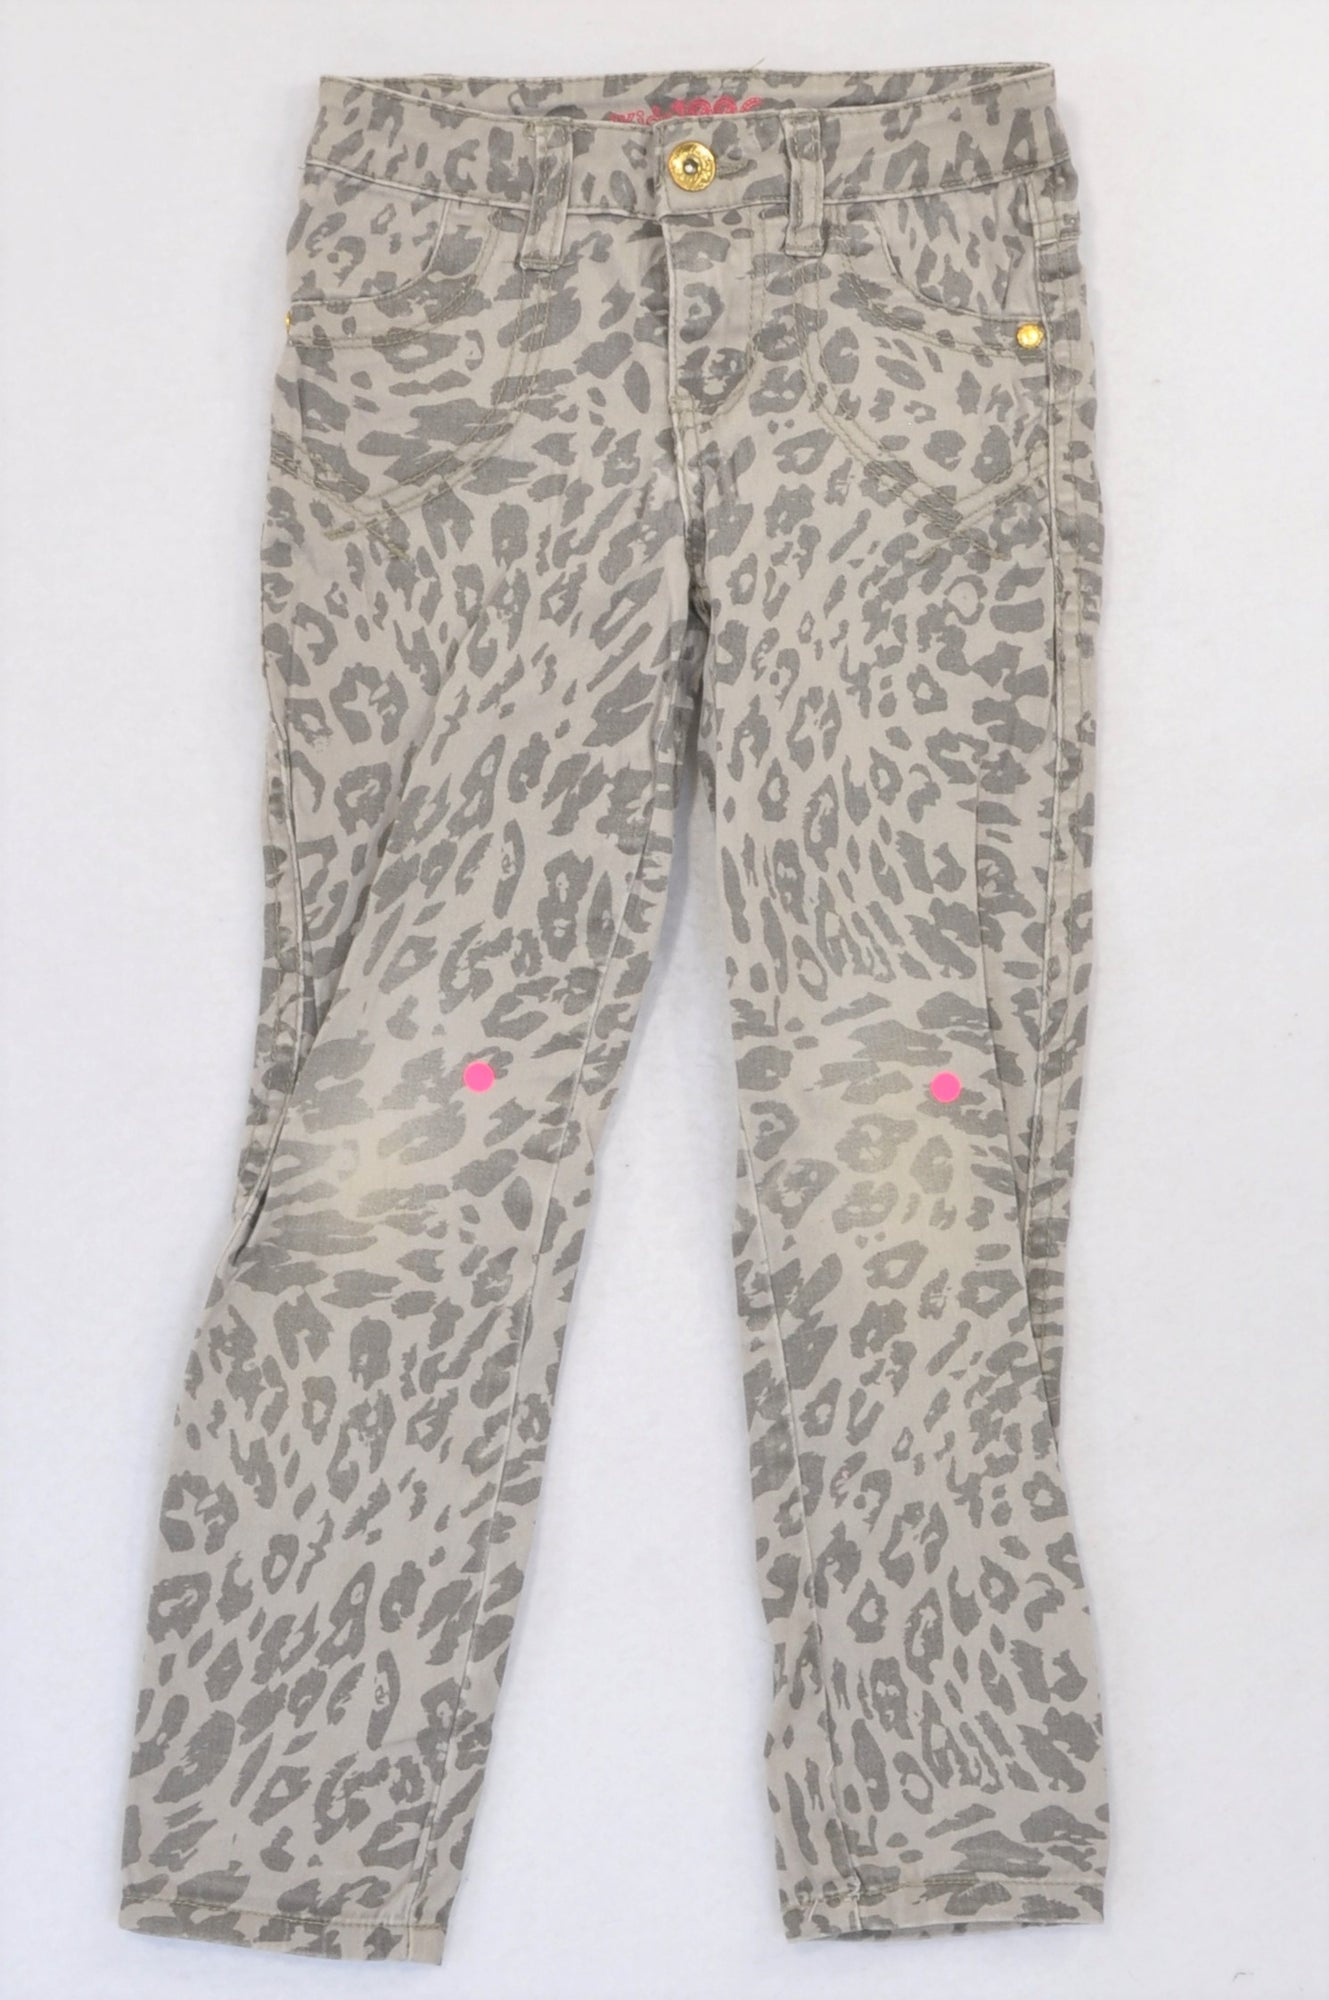 Pick 'n Pay Grey Animal Print Stretch Skinny Jeans Girls 5-6 years